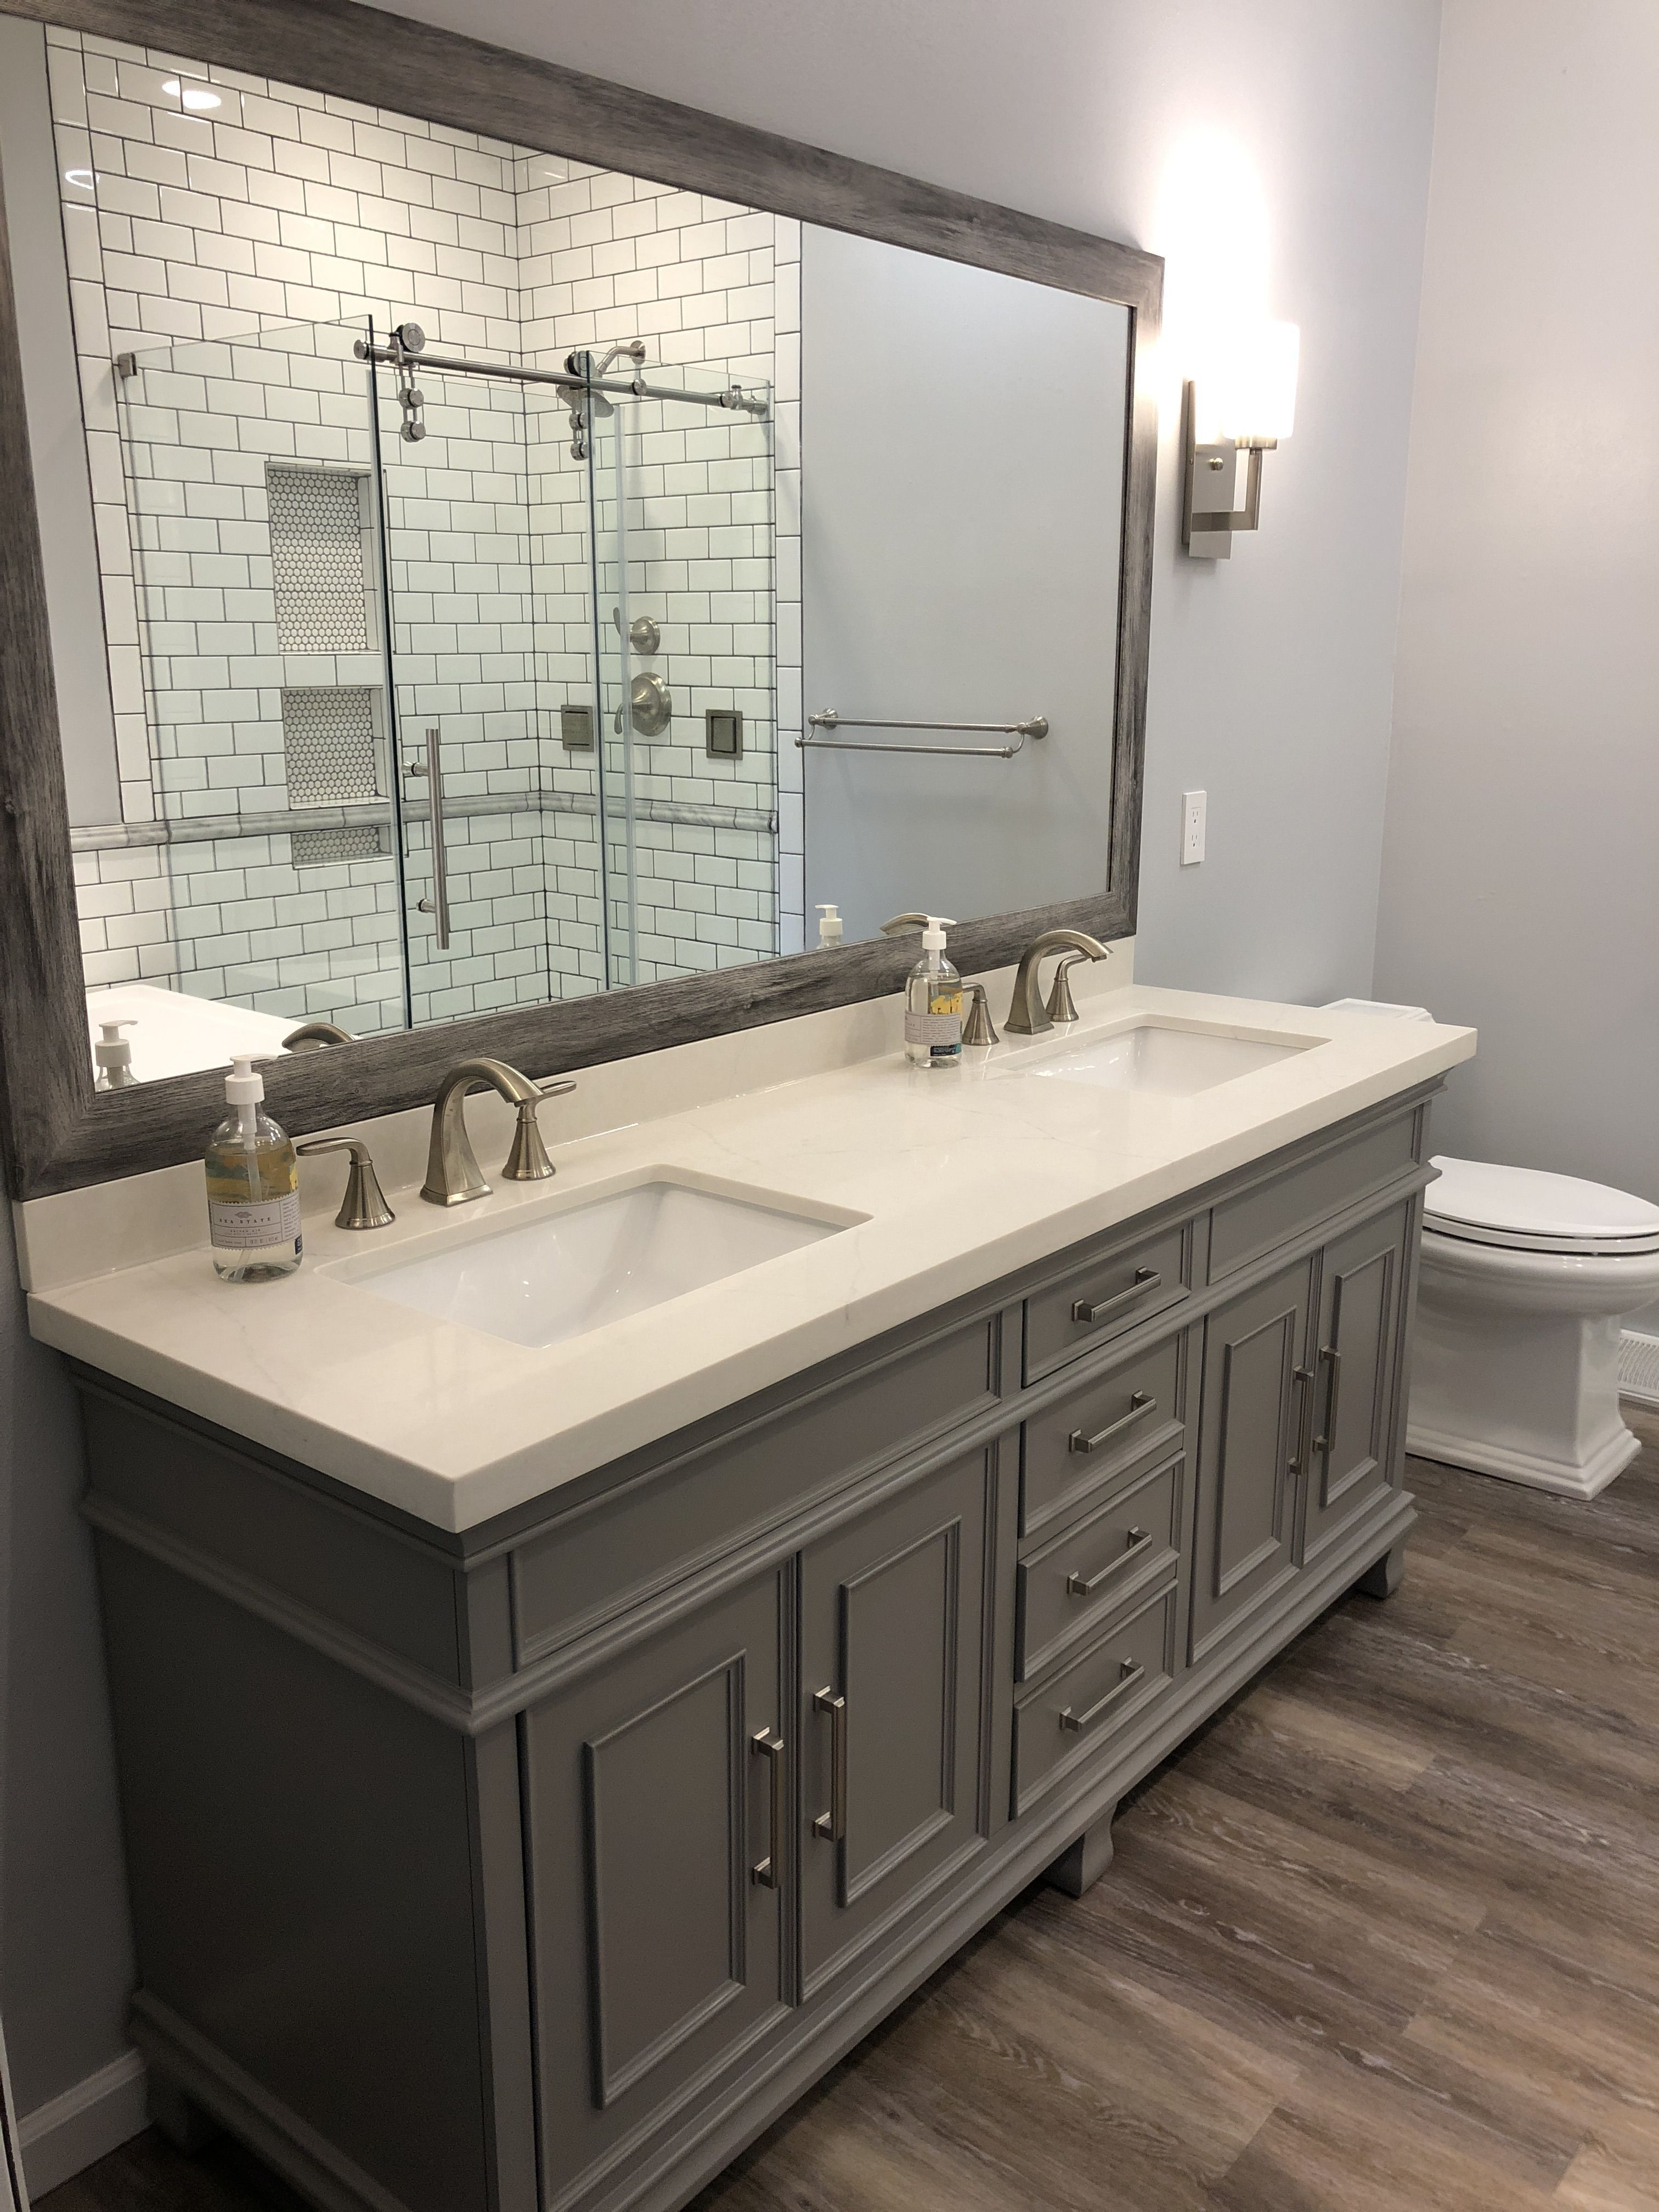 Top 10 Double Bathroom Vanity Design Ideas Double Vanity